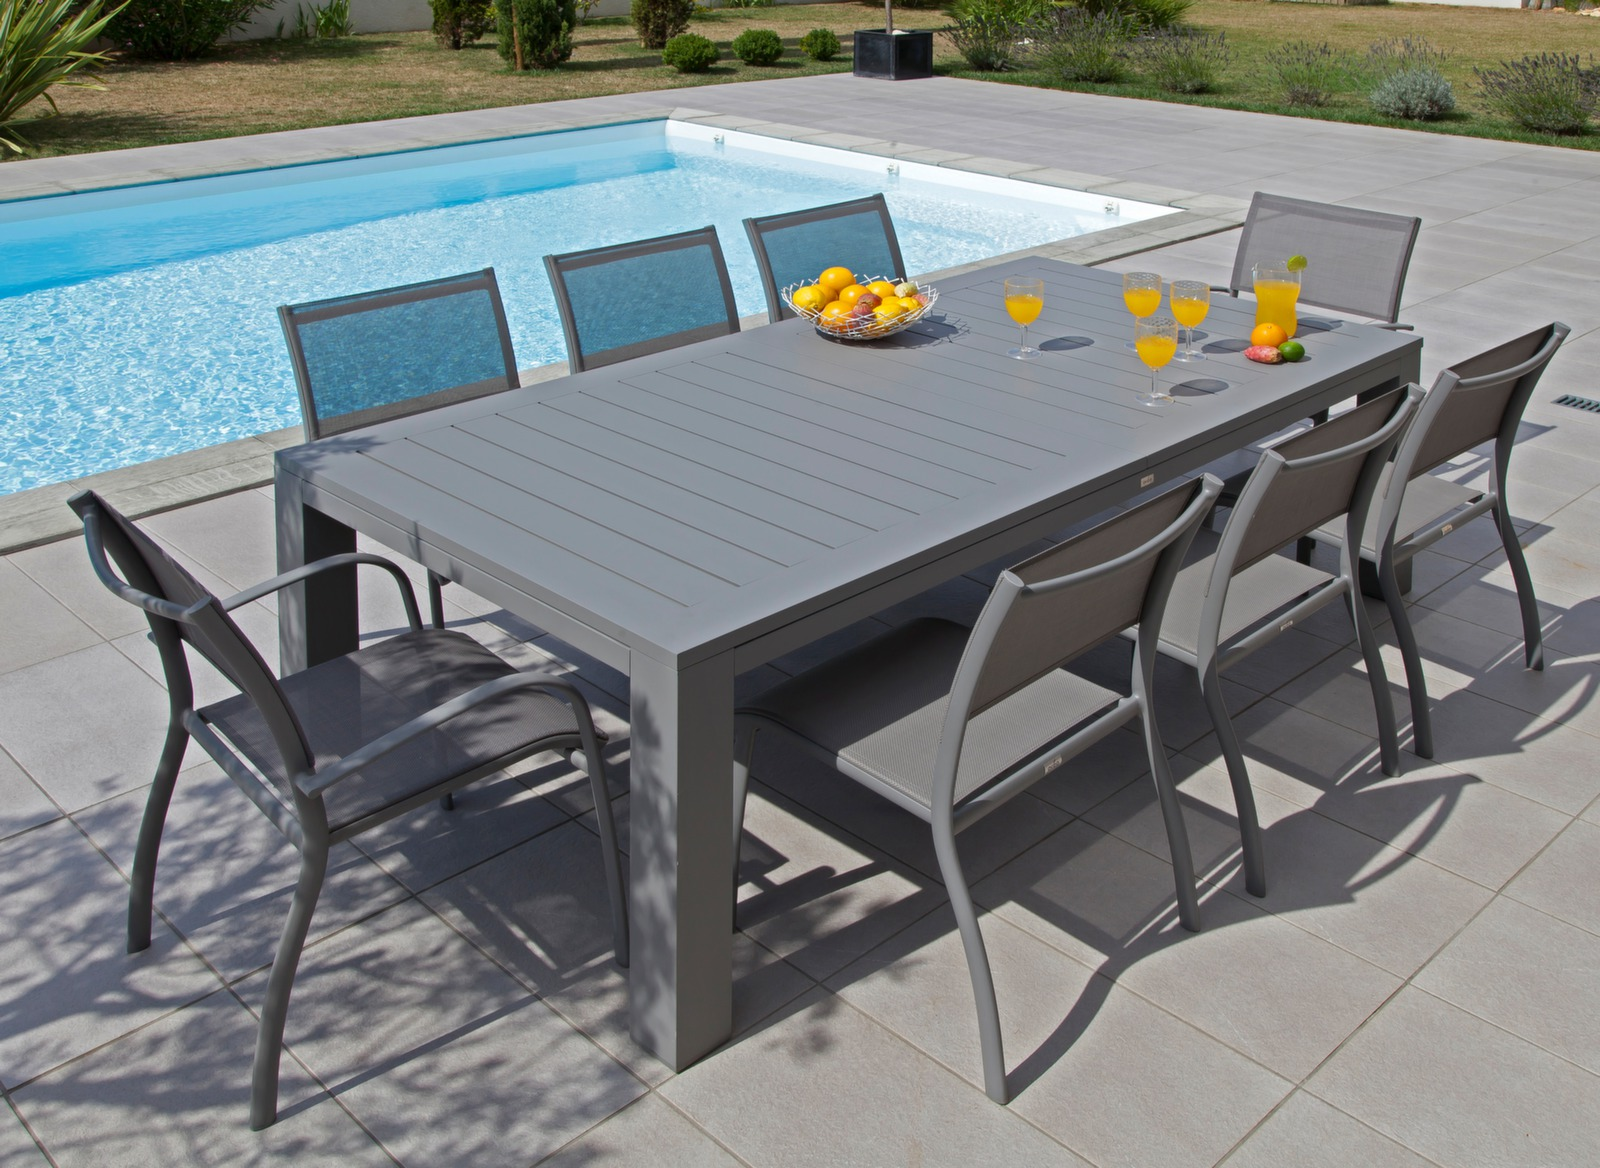 Table Aurore 214/311cm - Table avec extension - Mobilier de jardin